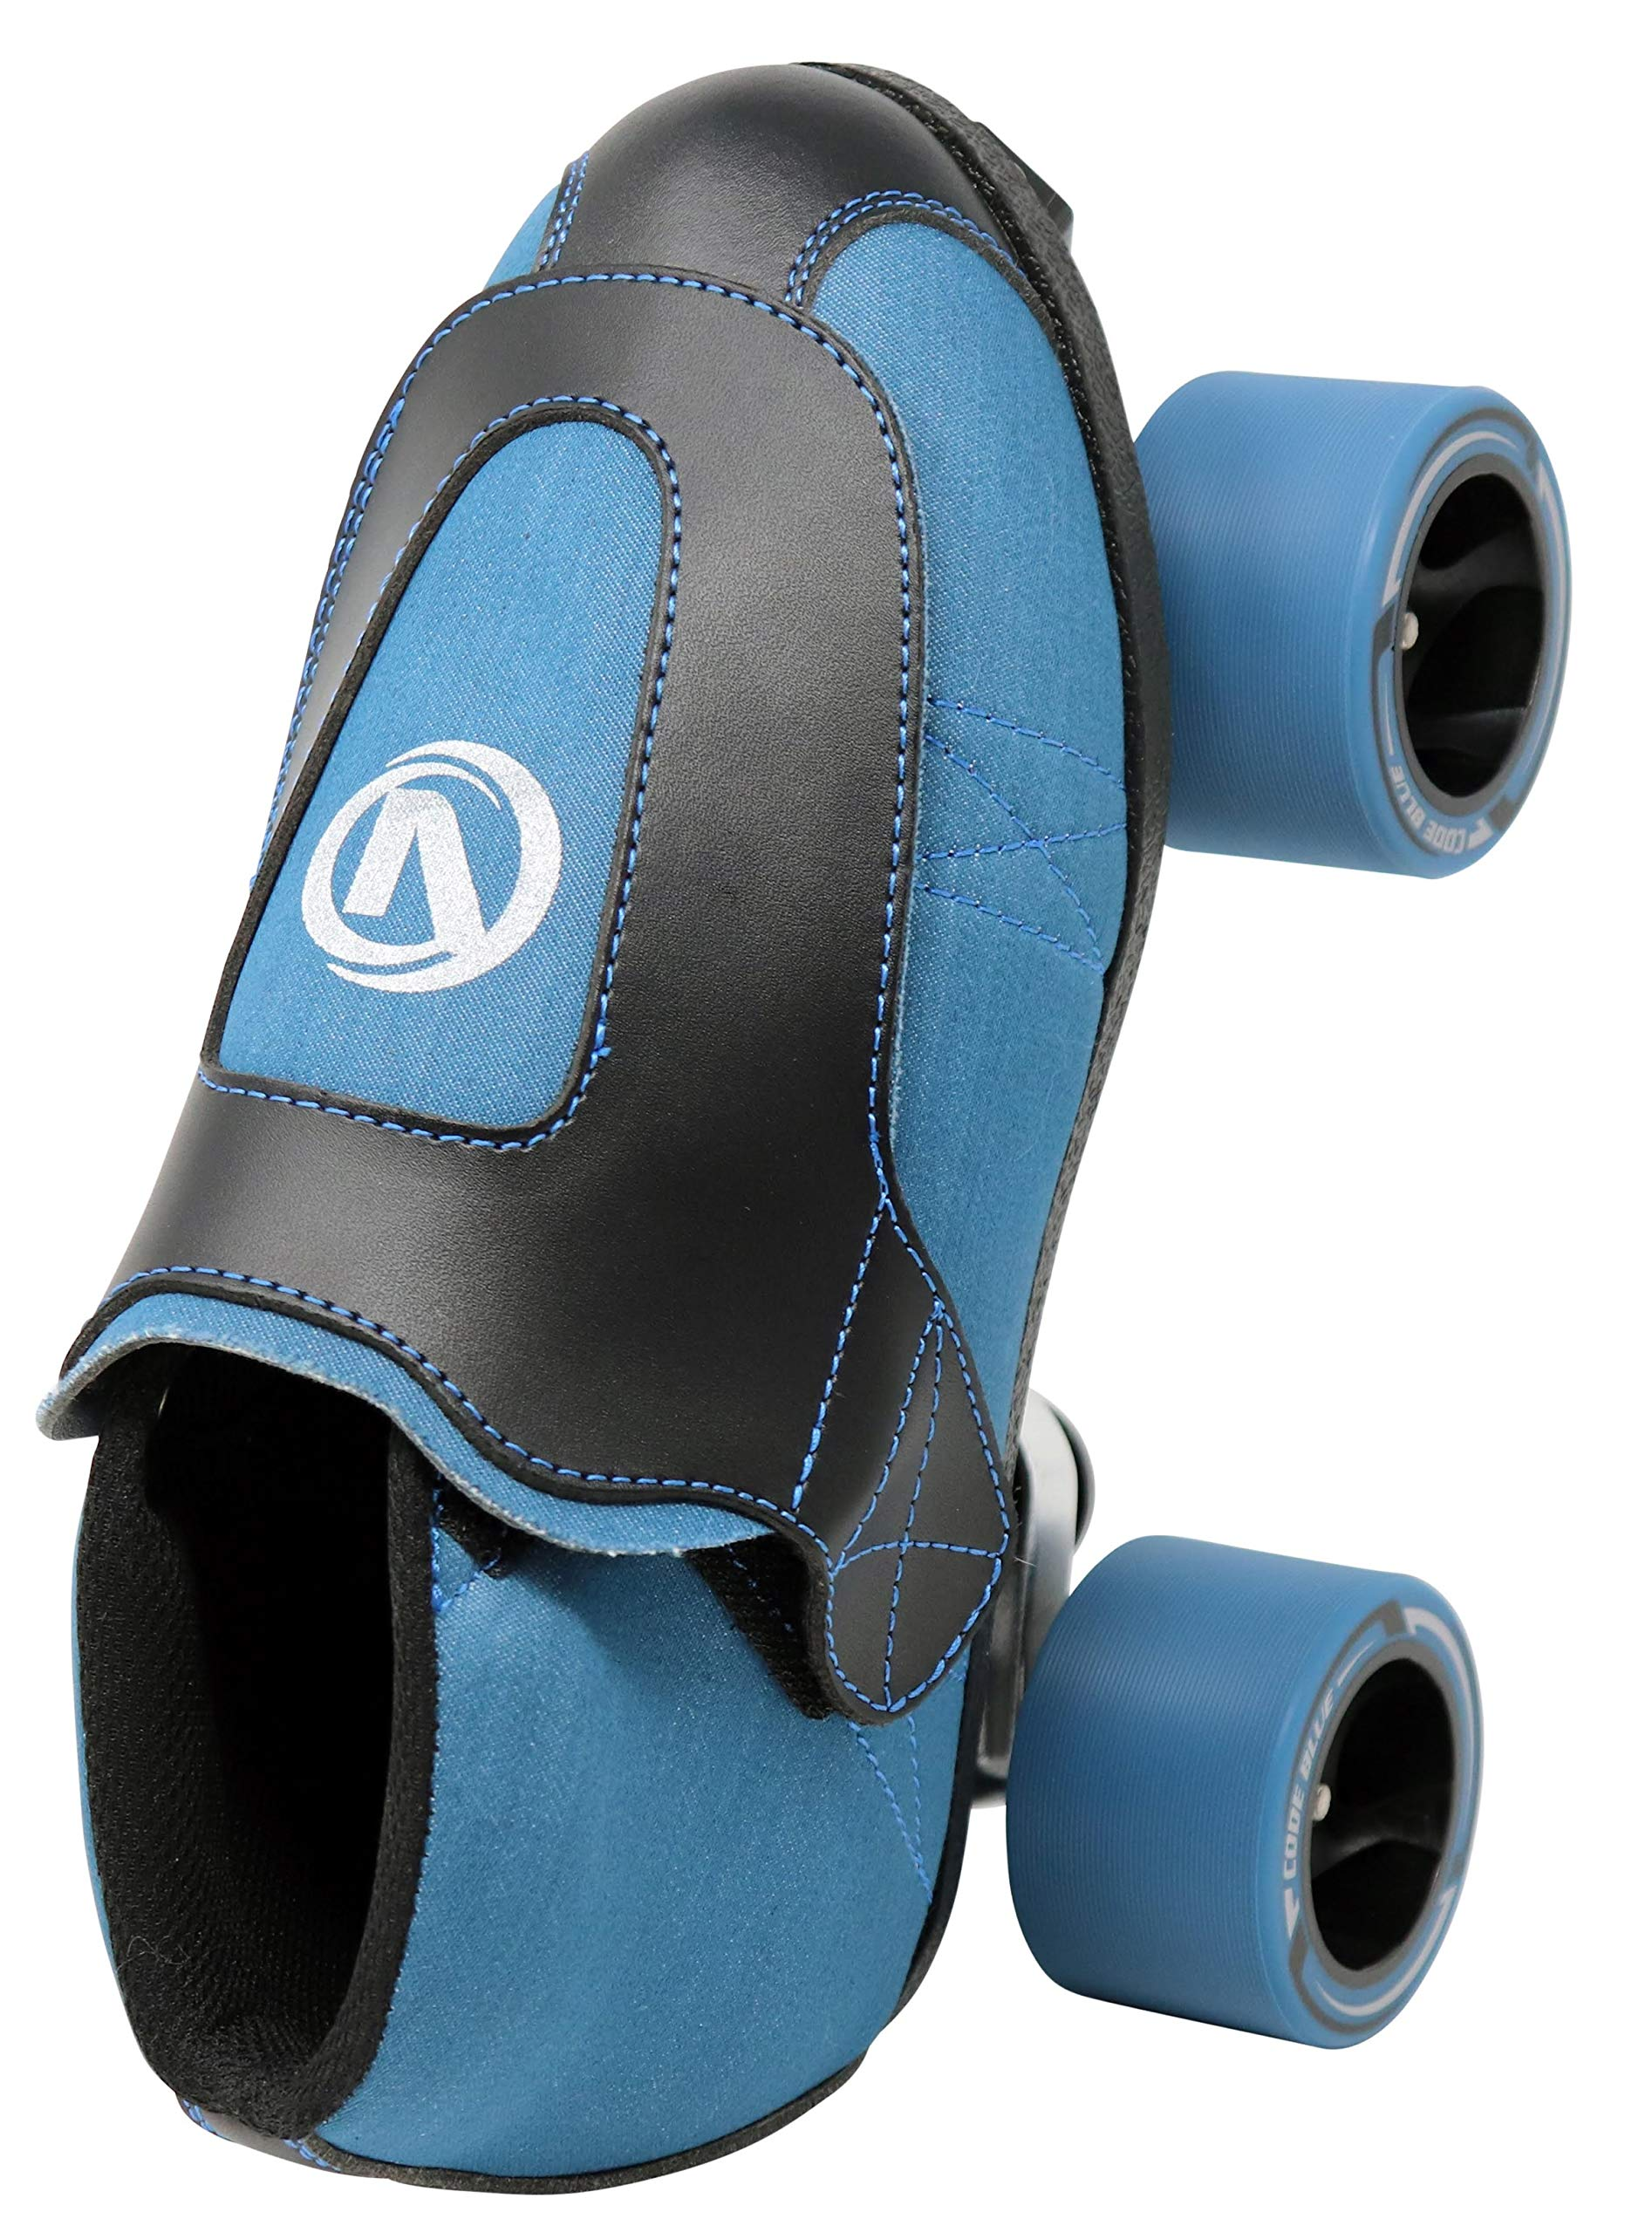 VNLA Code Blue Jam Skate - Mens & Womens Speed Skates - Quad Skates for Women & Men - Adjustable Roller Skate/Rollerskates - Outdoor & Indoor Adult Quad Skate - Kid/Kids Roller Skates (Size 5) by VNLA (Image #4)